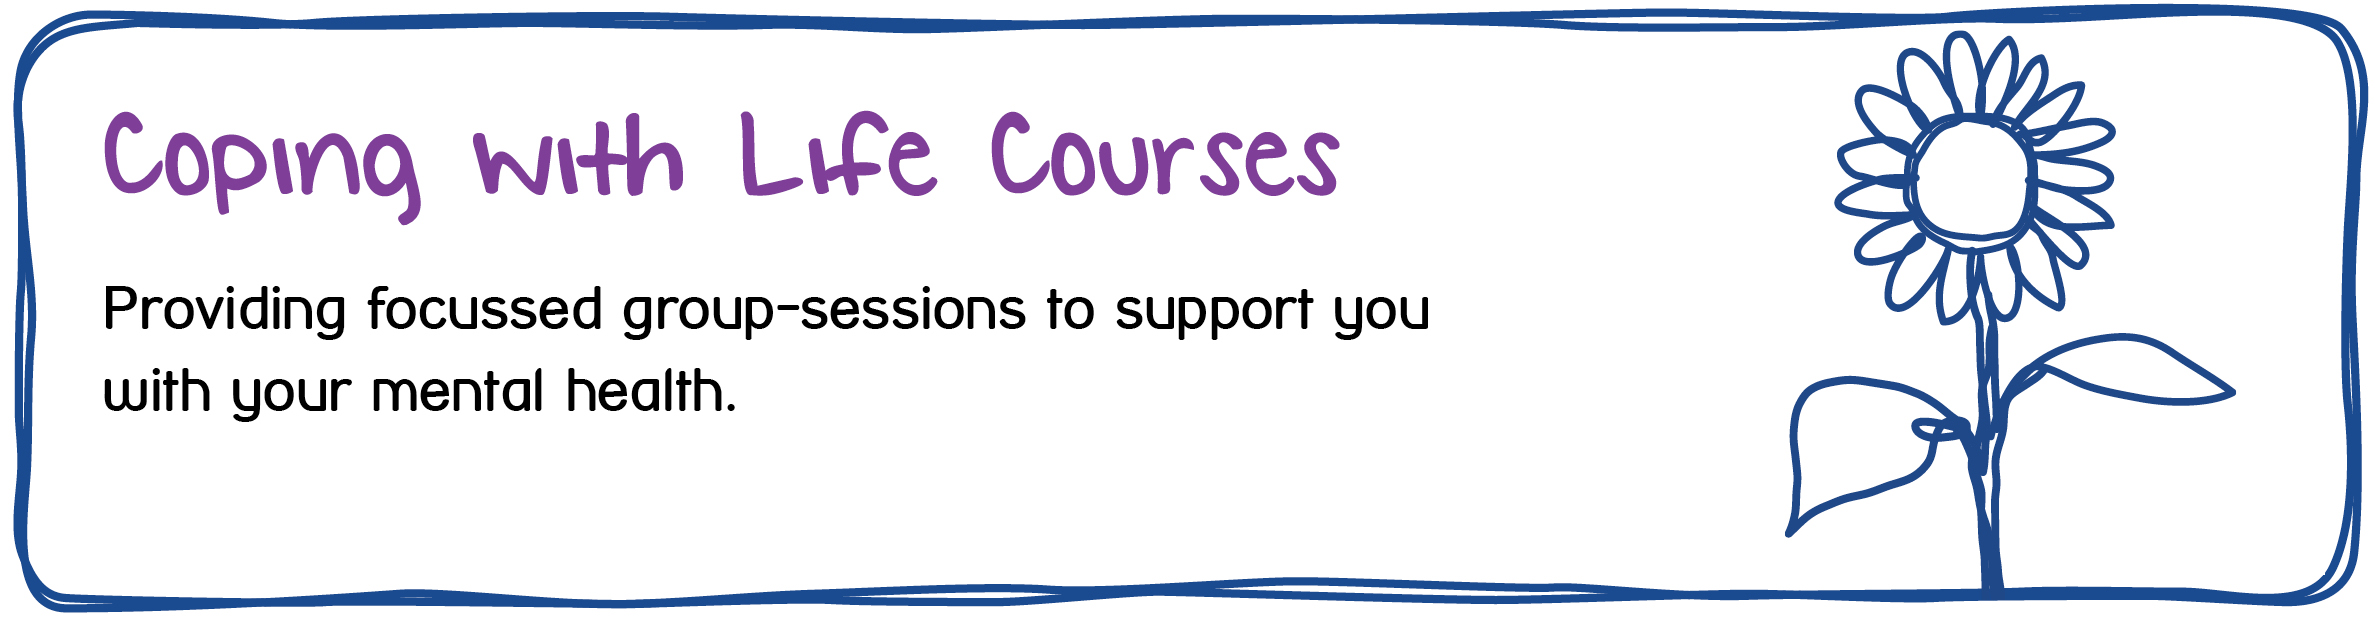 Coping with Life - Slide Image with cartoon banner. Providing focussed group-sessions to support you with your mental health.